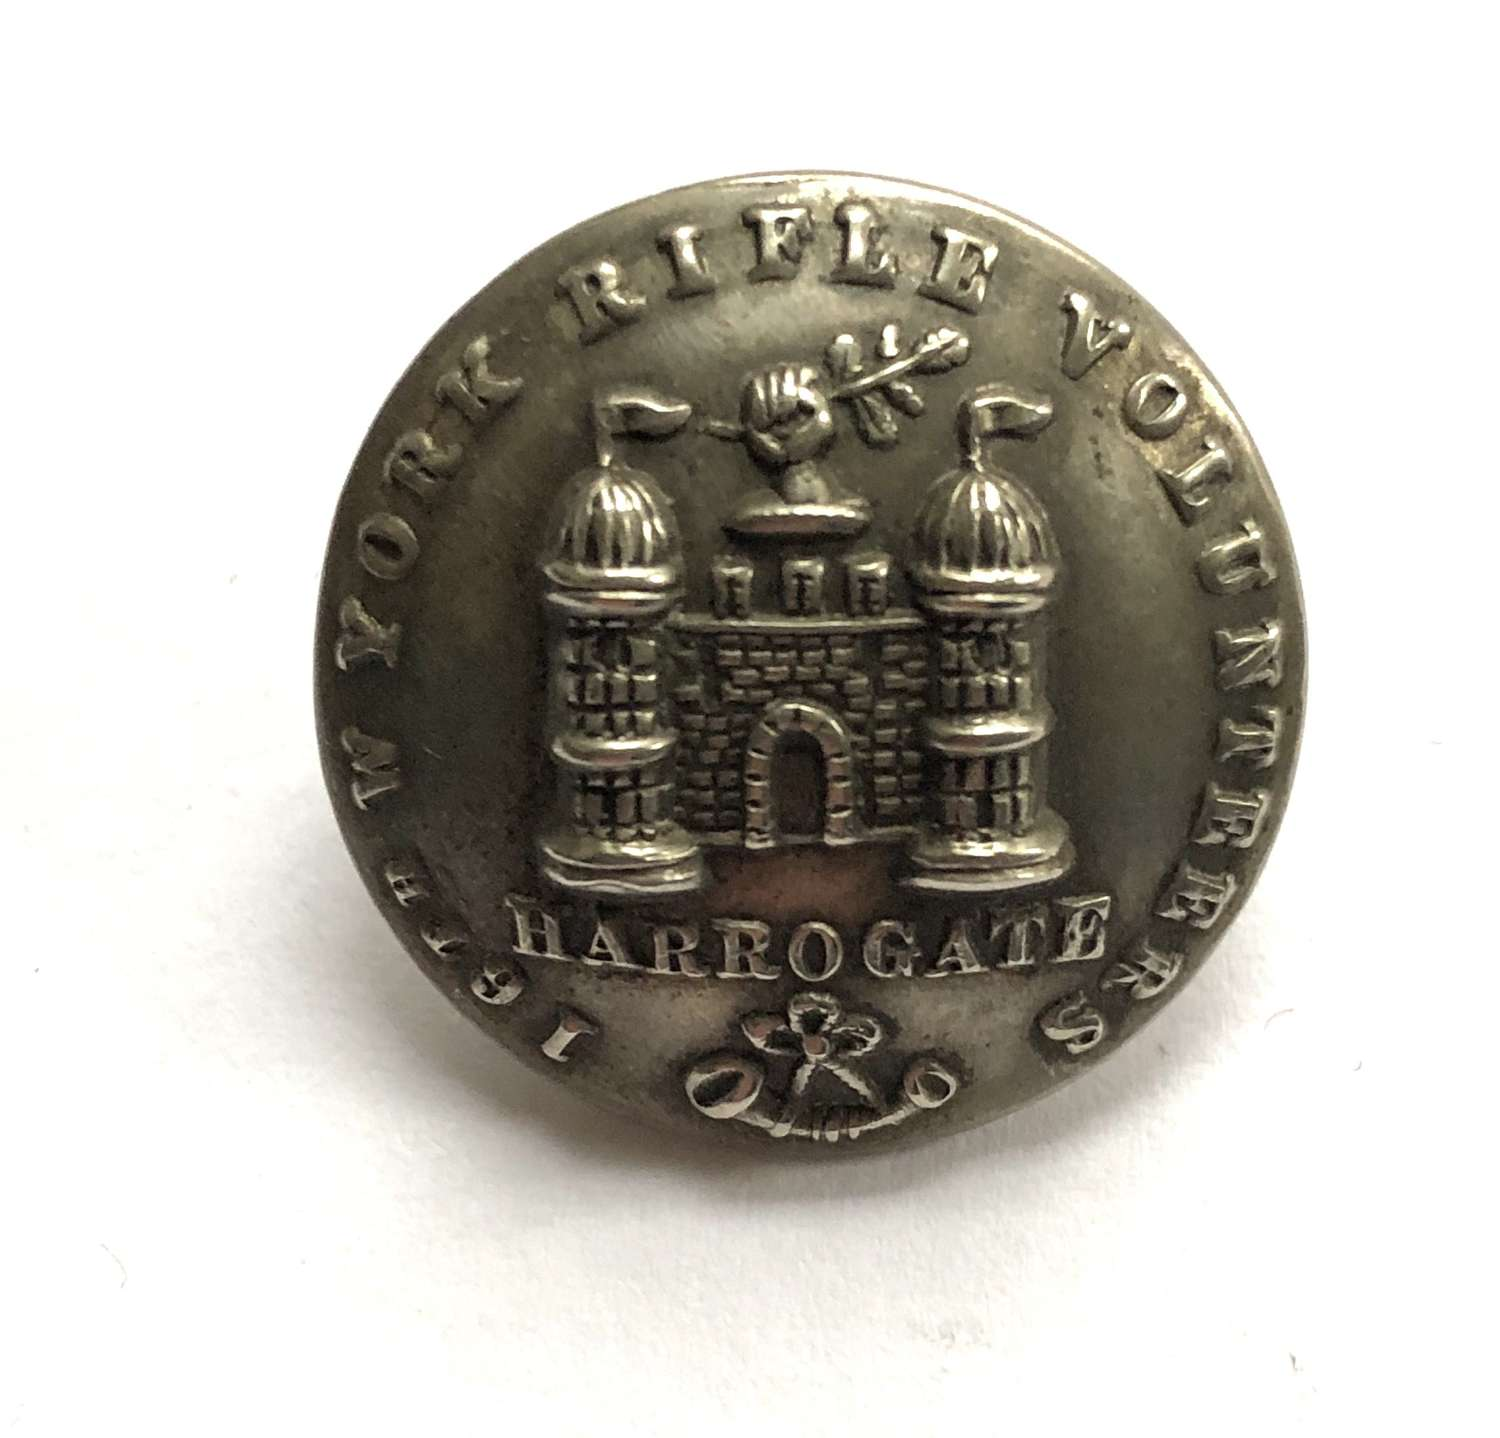 16th (Harrogate) West York Rifle Volunteers Victorian tunic button